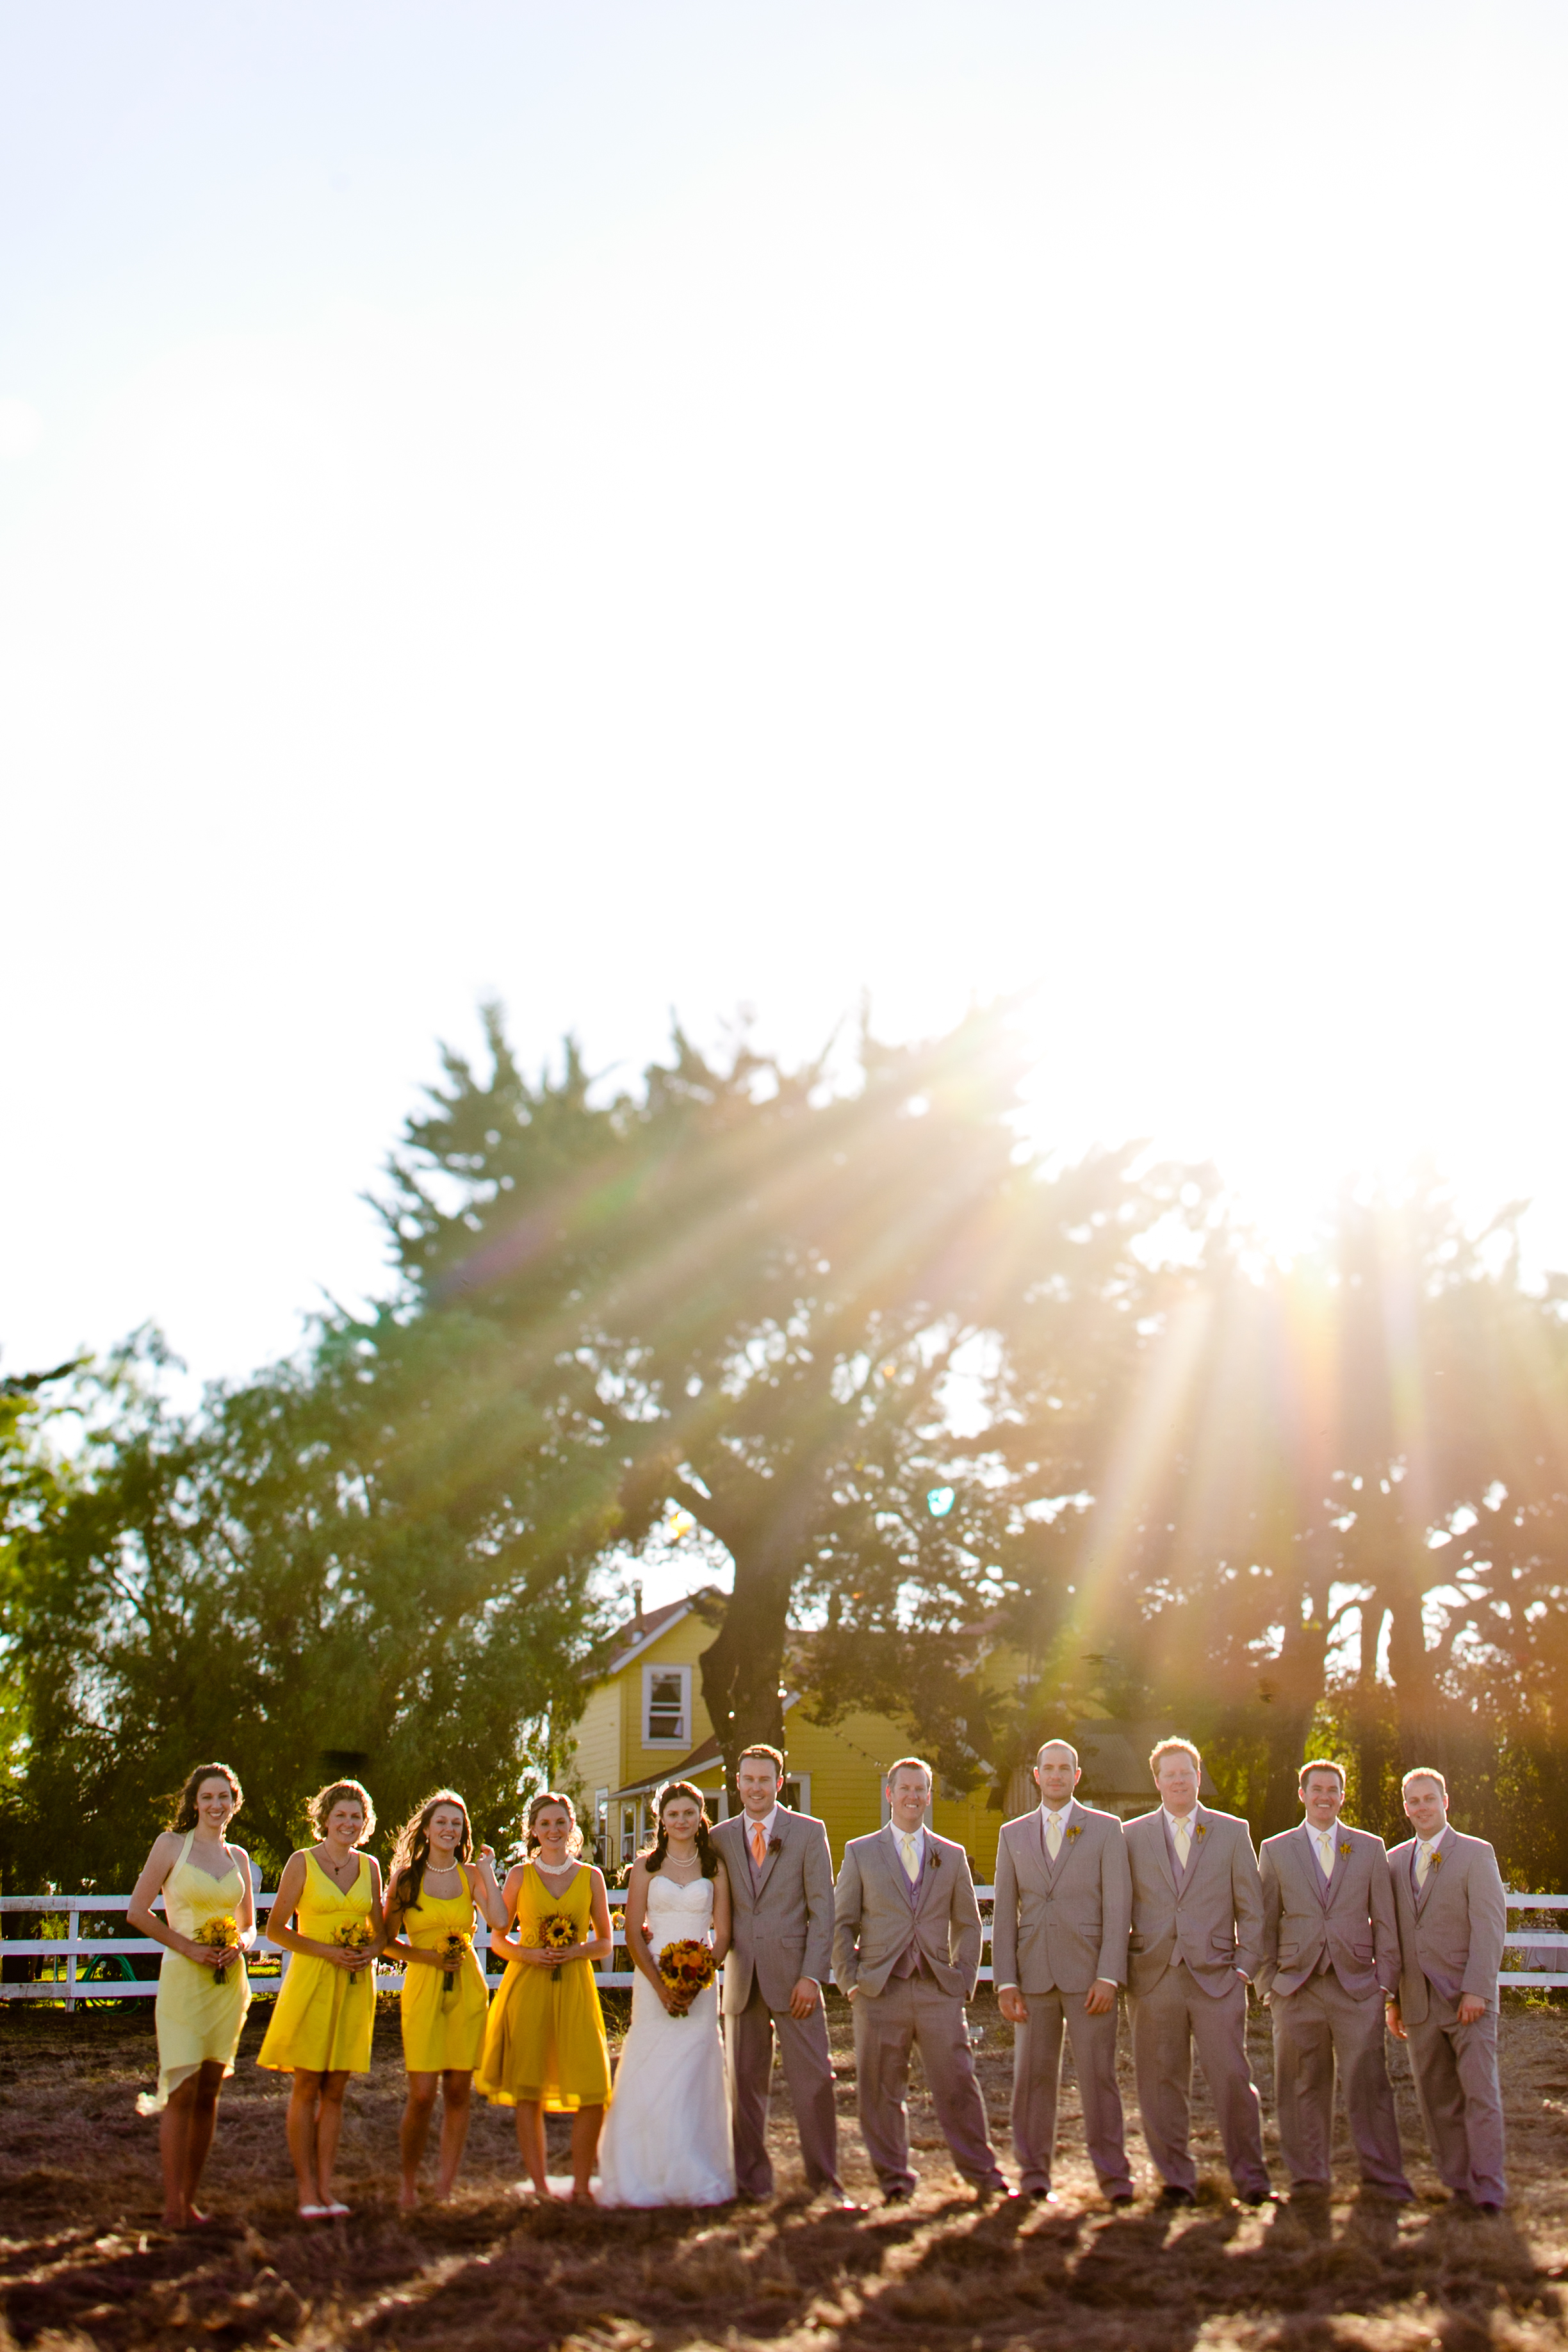 Inspired by This Real Wedding Bright and Colorful Farmhouse